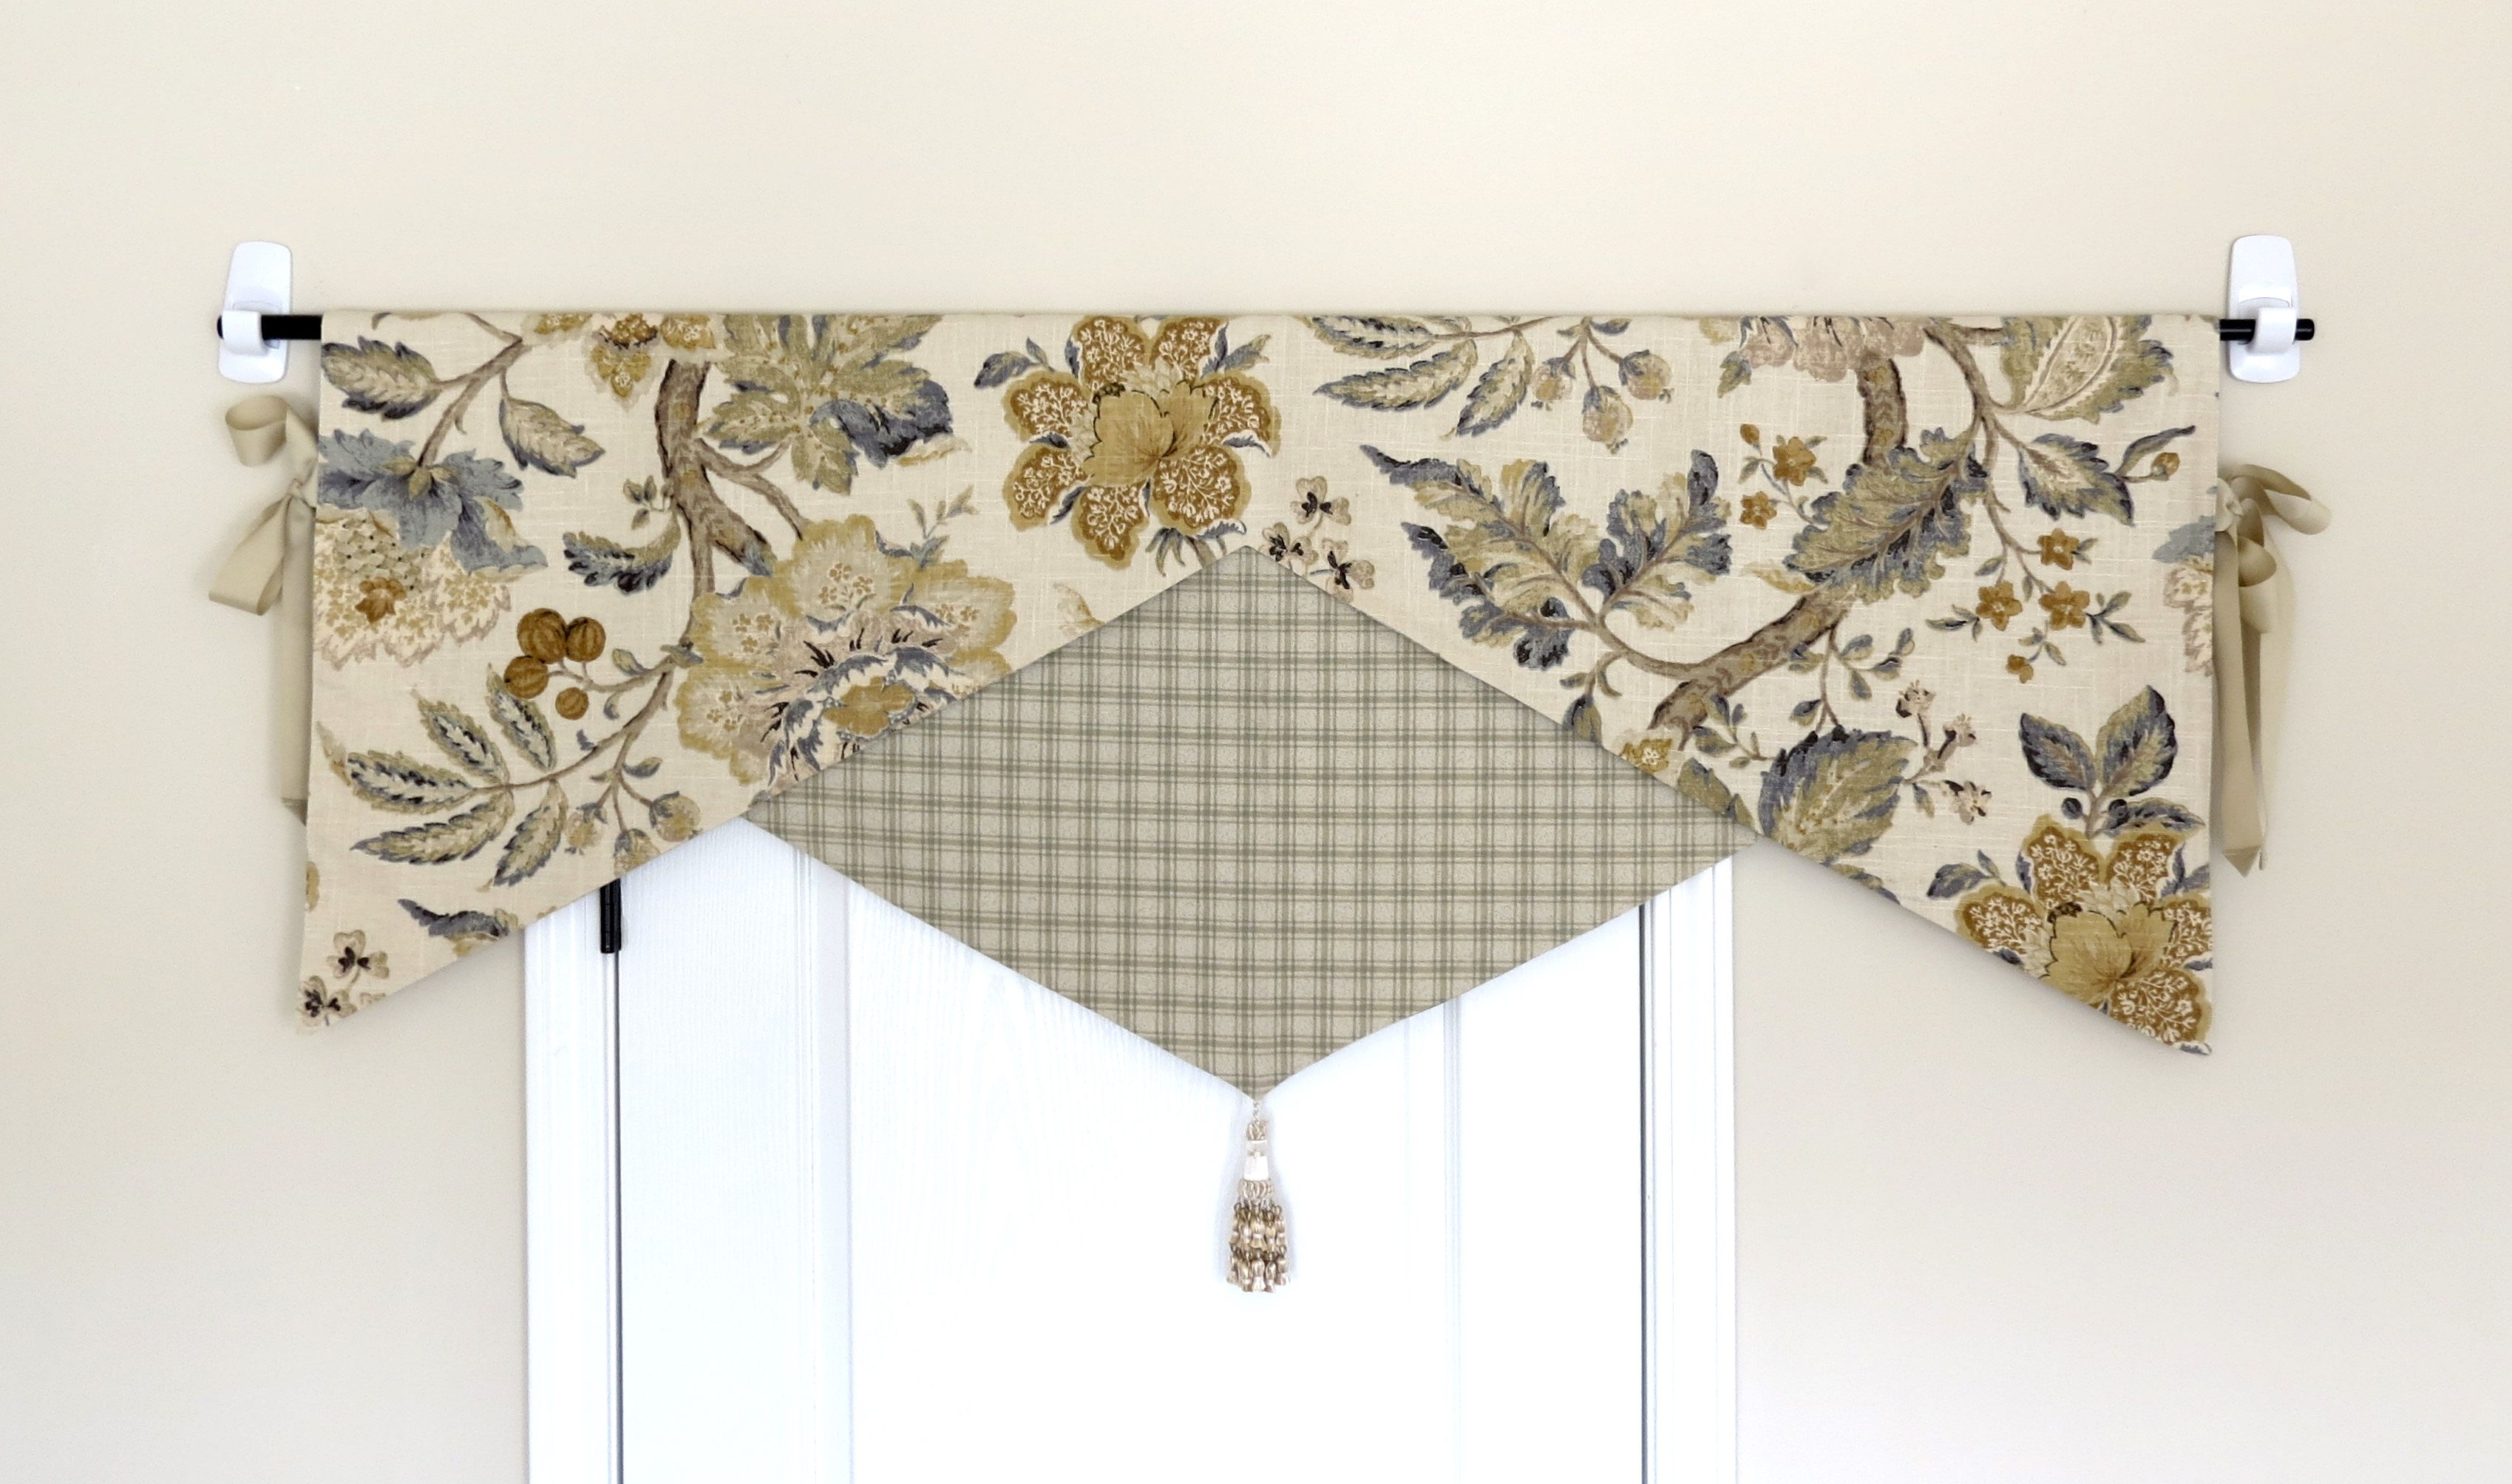 Reversible Yellow Grey Kitchen Bathroom Valance Bathroom Valance Valance Curtains Valance